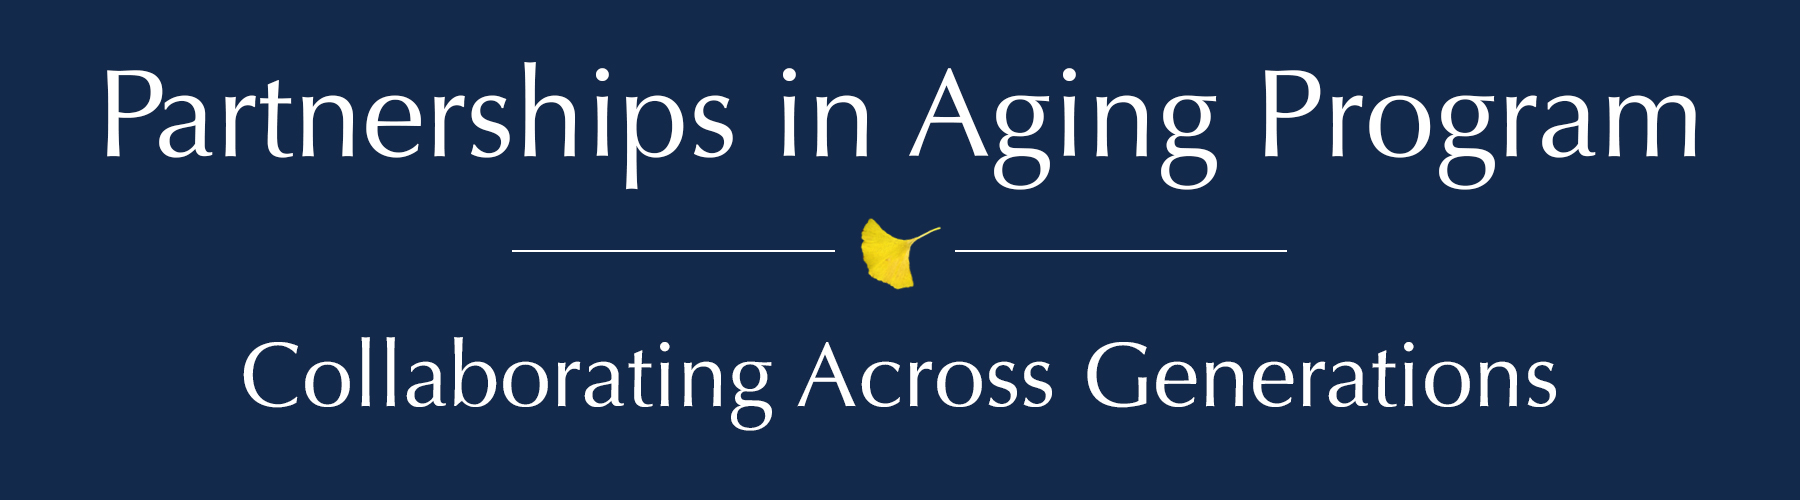 Partnerships in Aging Program